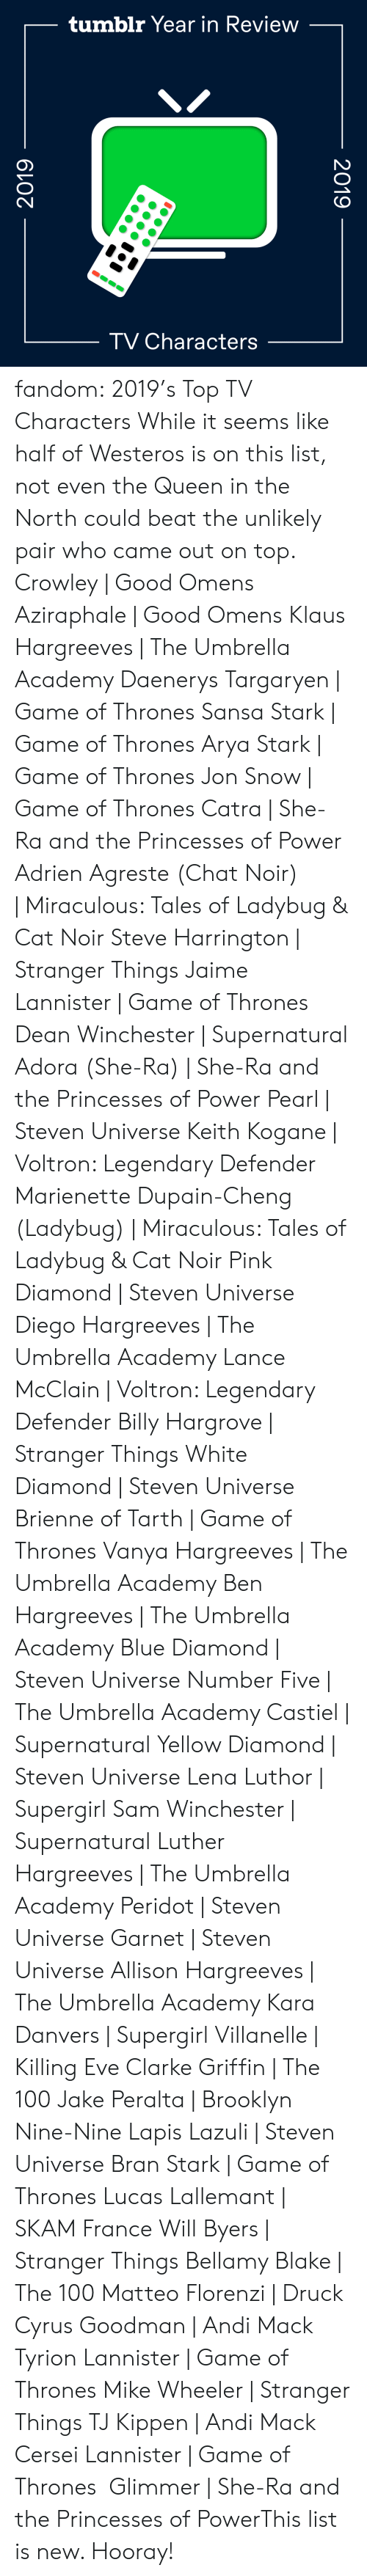 diego: tumblr Year in Review  TV Characters  2019  2019 fandom:  2019's Top TV Characters  While it seems like half of Westeros is on this list, not even the Queen in the North could beat the unlikely pair who came out on top.  Crowley | Good Omens  Aziraphale | Good Omens  Klaus Hargreeves | The Umbrella Academy  Daenerys Targaryen | Game of Thrones  Sansa Stark | Game of Thrones  Arya Stark | Game of Thrones  Jon Snow | Game of Thrones  Catra | She-Ra and the Princesses of Power  Adrien Agreste (Chat Noir) | Miraculous: Tales of Ladybug & Cat Noir  Steve Harrington | Stranger Things  Jaime Lannister | Game of Thrones  Dean Winchester | Supernatural  Adora (She-Ra) | She-Ra and the Princesses of Power  Pearl | Steven Universe  Keith Kogane | Voltron: Legendary Defender  Marienette Dupain-Cheng (Ladybug) | Miraculous: Tales of Ladybug & Cat Noir  Pink Diamond | Steven Universe  Diego Hargreeves | The Umbrella Academy  Lance McClain | Voltron: Legendary Defender  Billy Hargrove | Stranger Things  White Diamond | Steven Universe  Brienne of Tarth | Game of Thrones  Vanya Hargreeves | The Umbrella Academy  Ben Hargreeves | The Umbrella Academy  Blue Diamond | Steven Universe  Number Five | The Umbrella Academy  Castiel | Supernatural  Yellow Diamond | Steven Universe  Lena Luthor | Supergirl  Sam Winchester | Supernatural  Luther Hargreeves | The Umbrella Academy  Peridot | Steven Universe  Garnet | Steven Universe  Allison Hargreeves | The Umbrella Academy  Kara Danvers | Supergirl  Villanelle | Killing Eve  Clarke Griffin | The 100  Jake Peralta | Brooklyn Nine-Nine  Lapis Lazuli | Steven Universe  Bran Stark | Game of Thrones  Lucas Lallemant | SKAM France  Will Byers | Stranger Things  Bellamy Blake | The 100  Matteo Florenzi | Druck  Cyrus Goodman | Andi Mack  Tyrion Lannister | Game of Thrones  Mike Wheeler | Stranger Things  TJ Kippen | Andi Mack  Cersei Lannister | Game of Thrones  Glimmer | She-Ra and the Princesses of PowerThis list is new. Hooray!